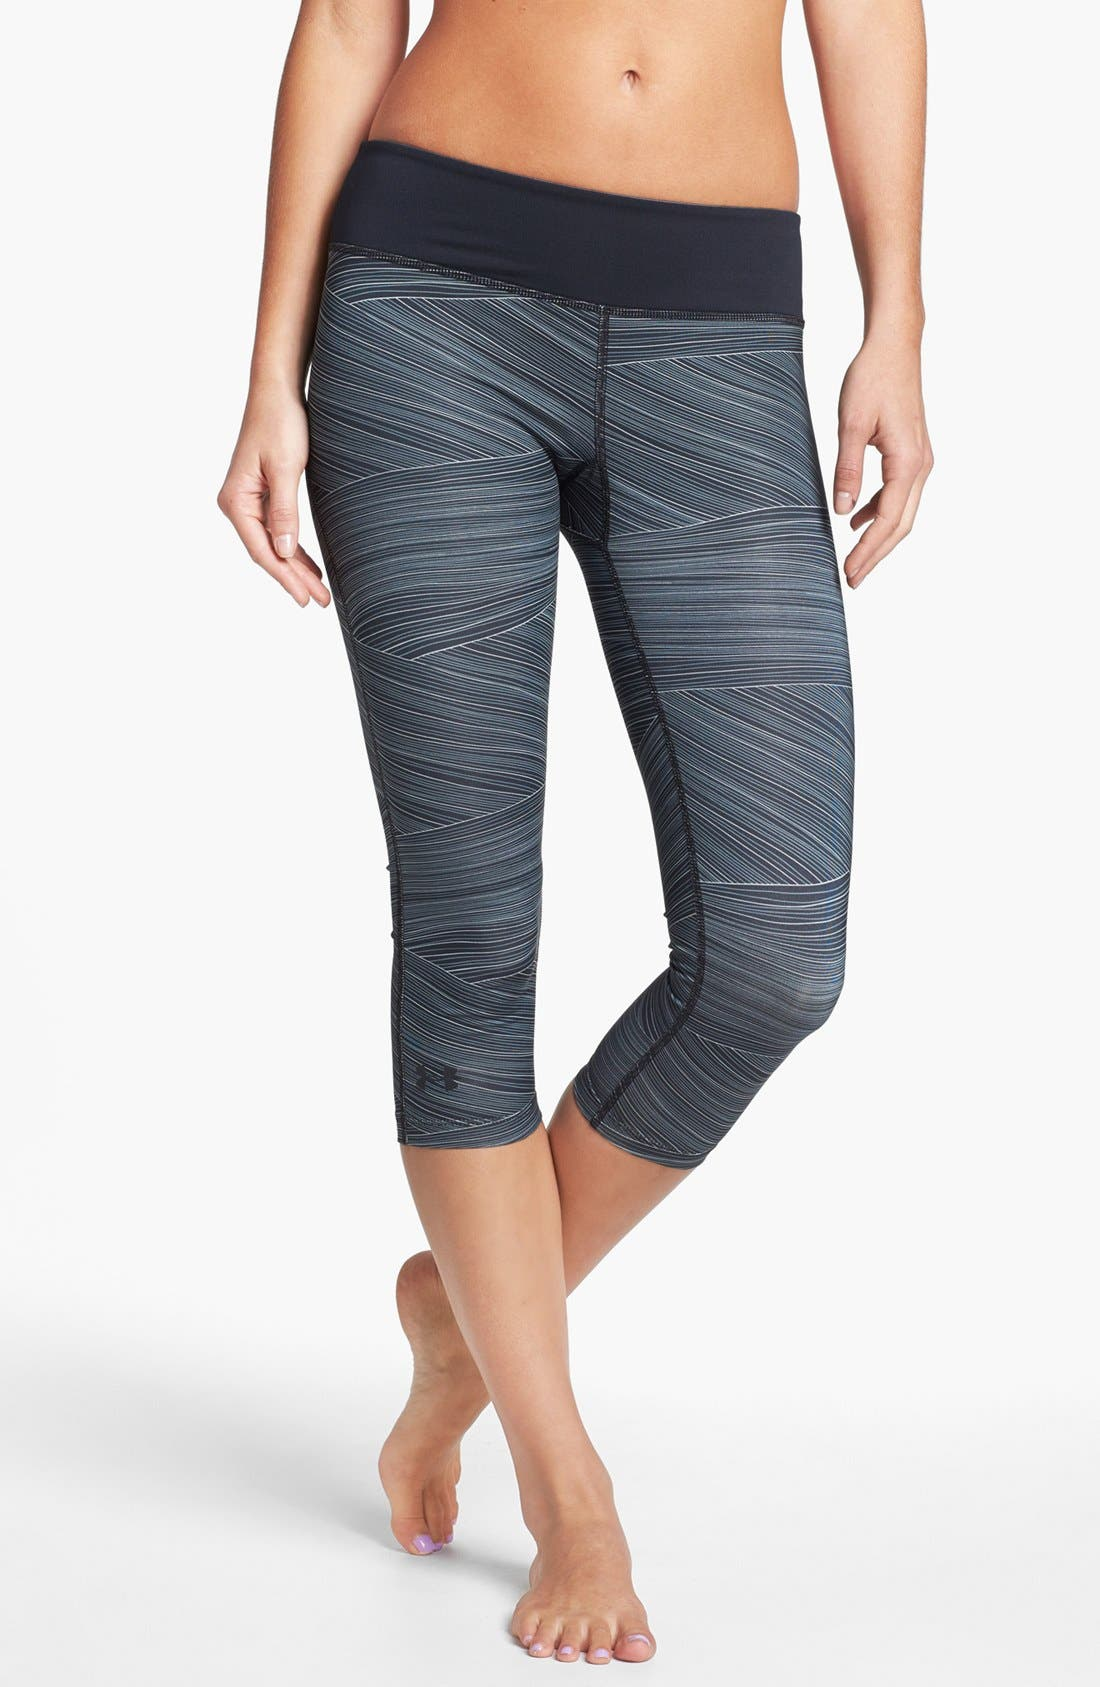 Alternate Image 1 Selected - Under Armour 'Sonic' Print Capris